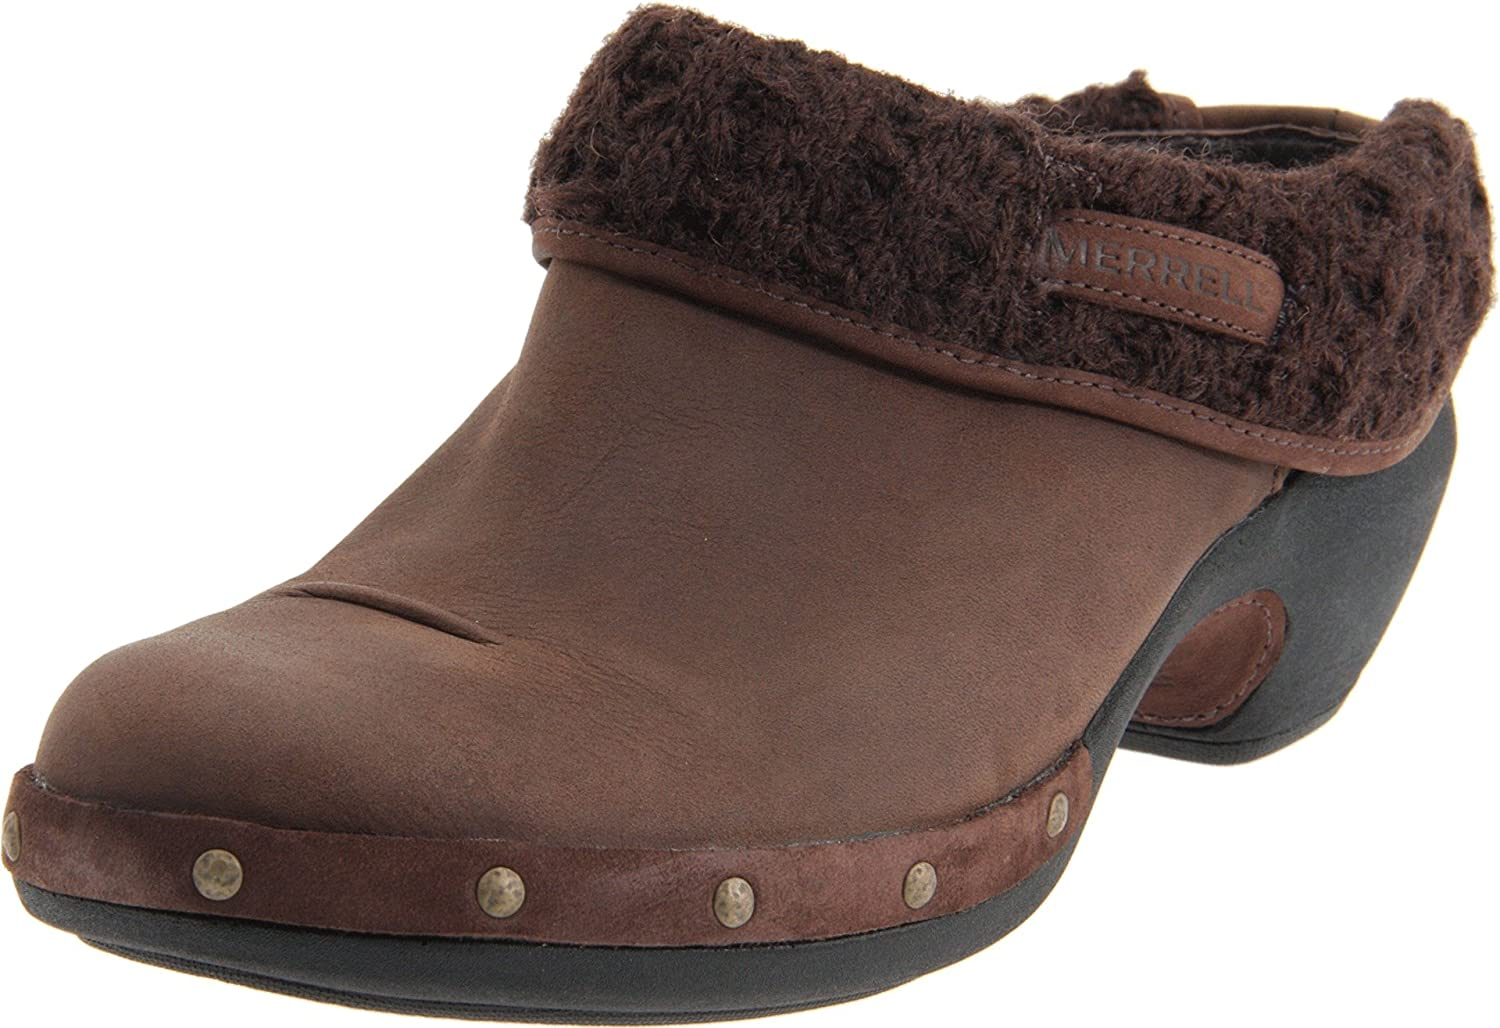 Dependence Short life crack  Merrell Luxe Knit Womens Leather Slip on Clogs / Shoes - Brown - SIZE UK 6:  Amazon.co.uk: Shoes & Bags